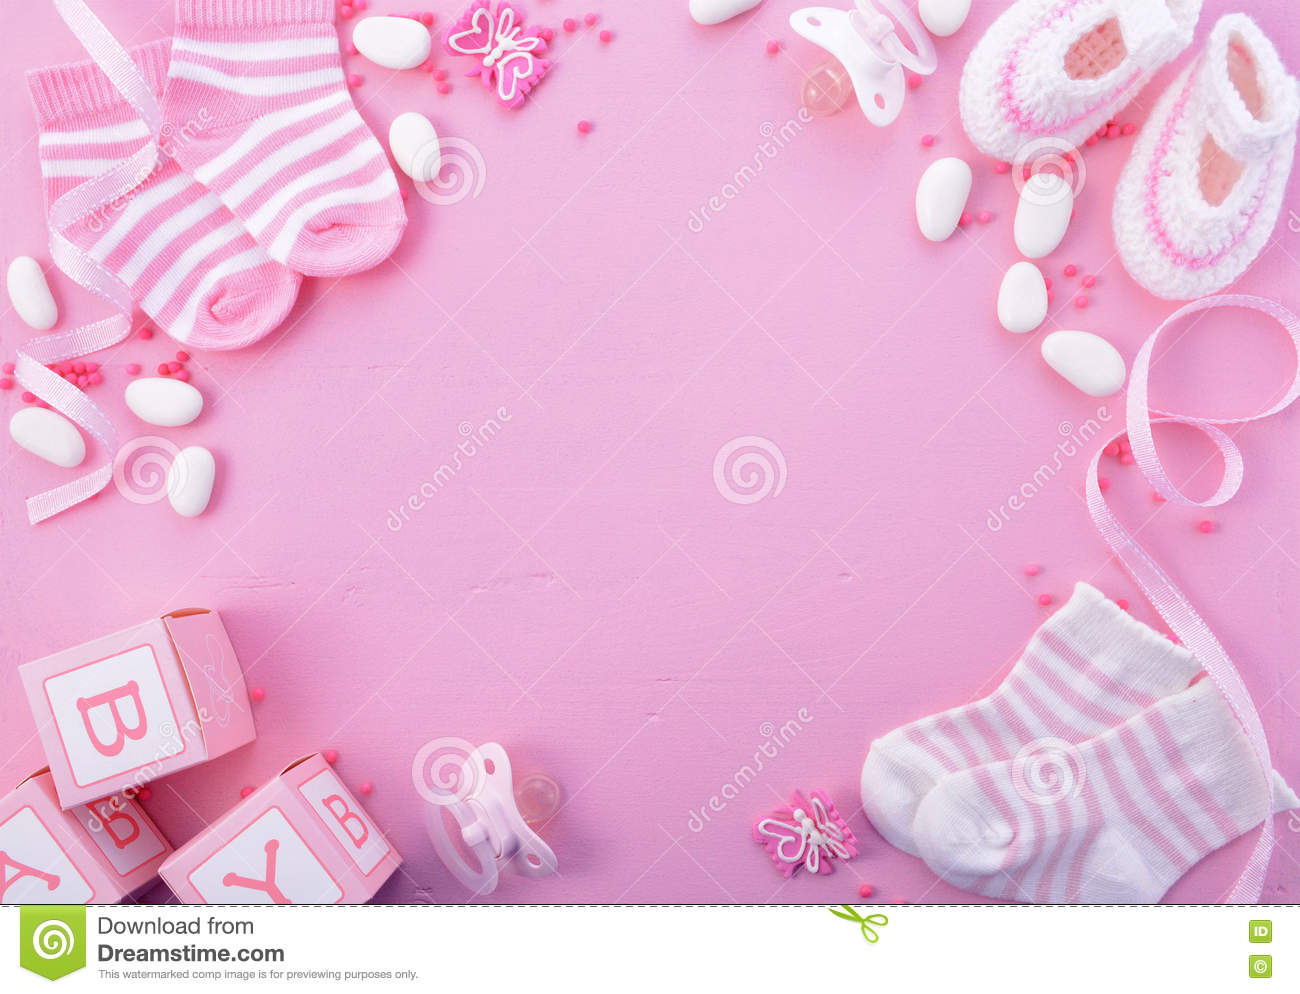 Baby Girl Wallpaper Borders Pink And Purple Pink Baby Shower Nursery Background Stock Image Image Of